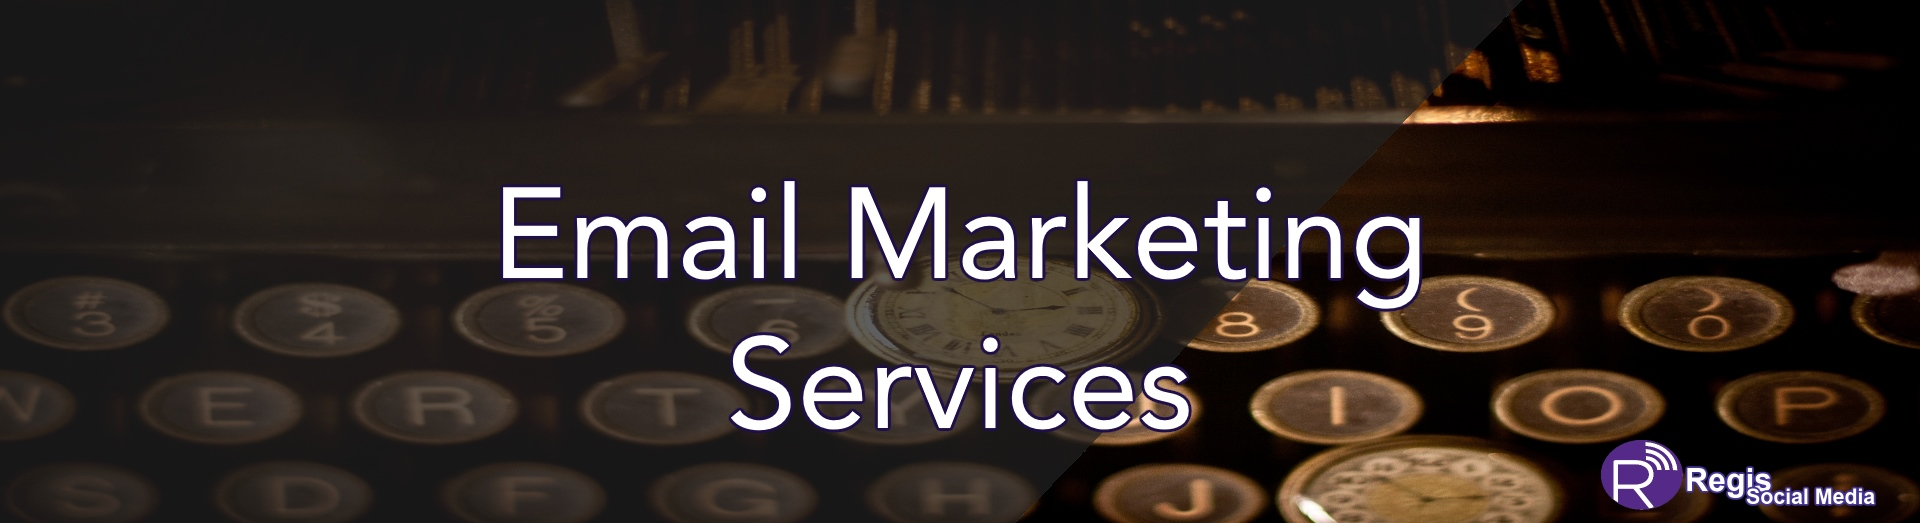 email-marketing-services-provided-by-Regis-Social-Media-for-your-local-business